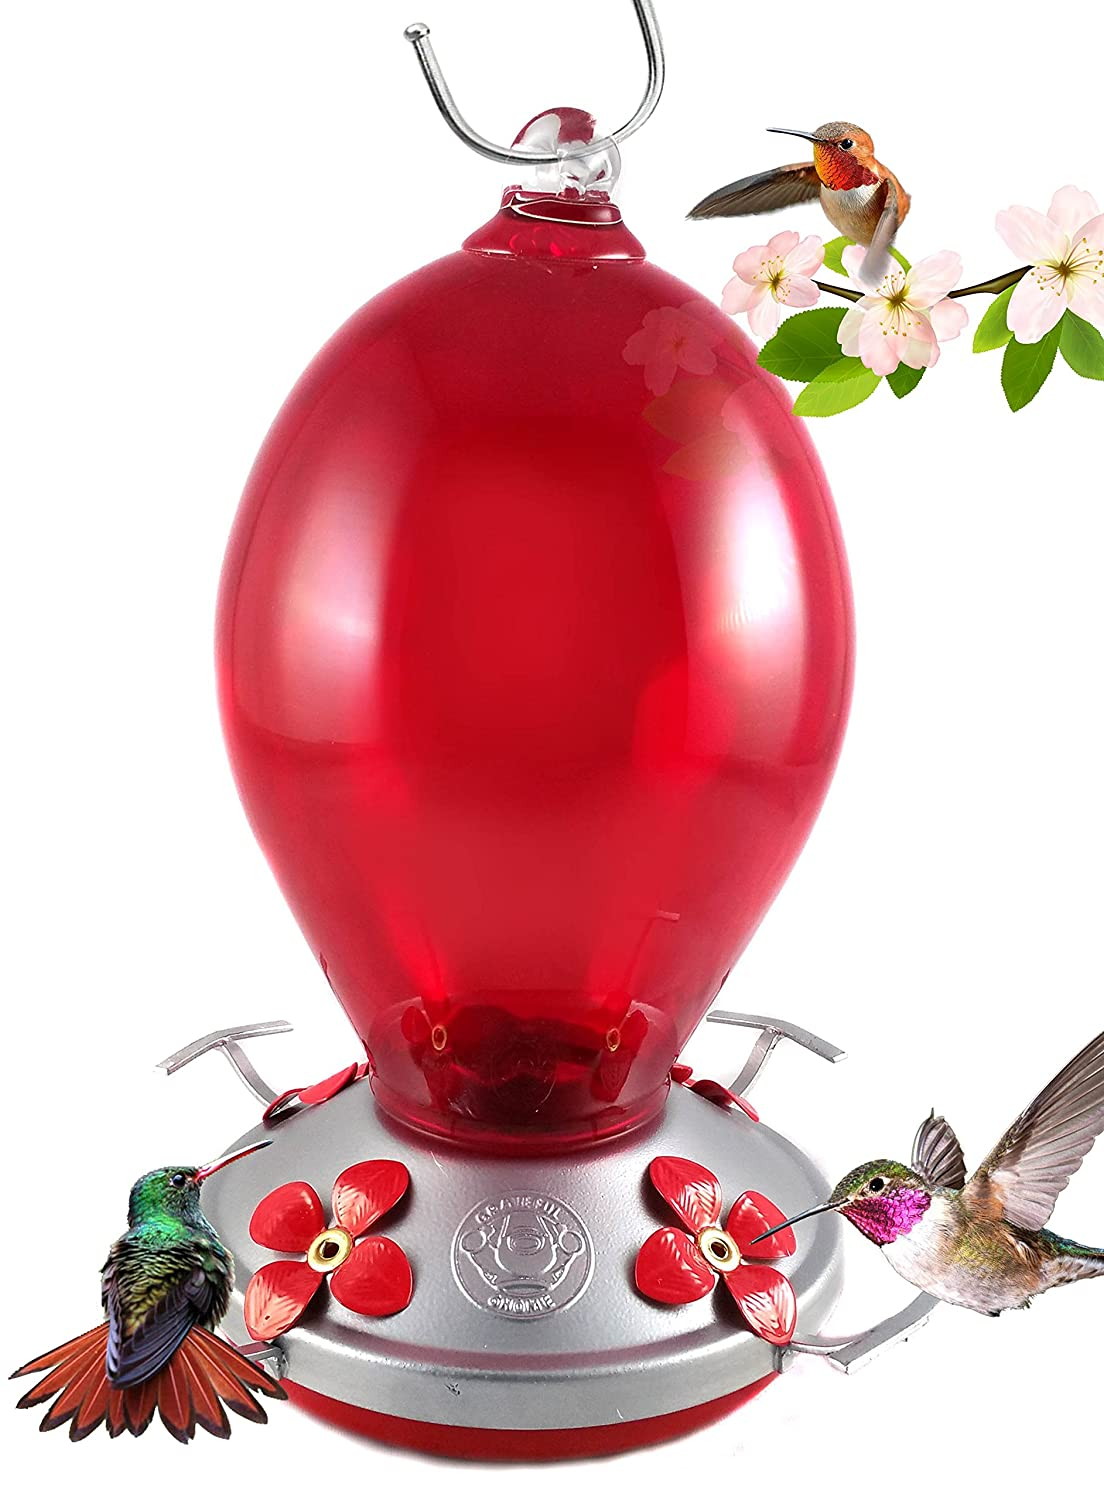 Grateful Gnome - Hummingbird Feeder - Hand Blown Glass - Red Egg - 28 Fluid Ounces